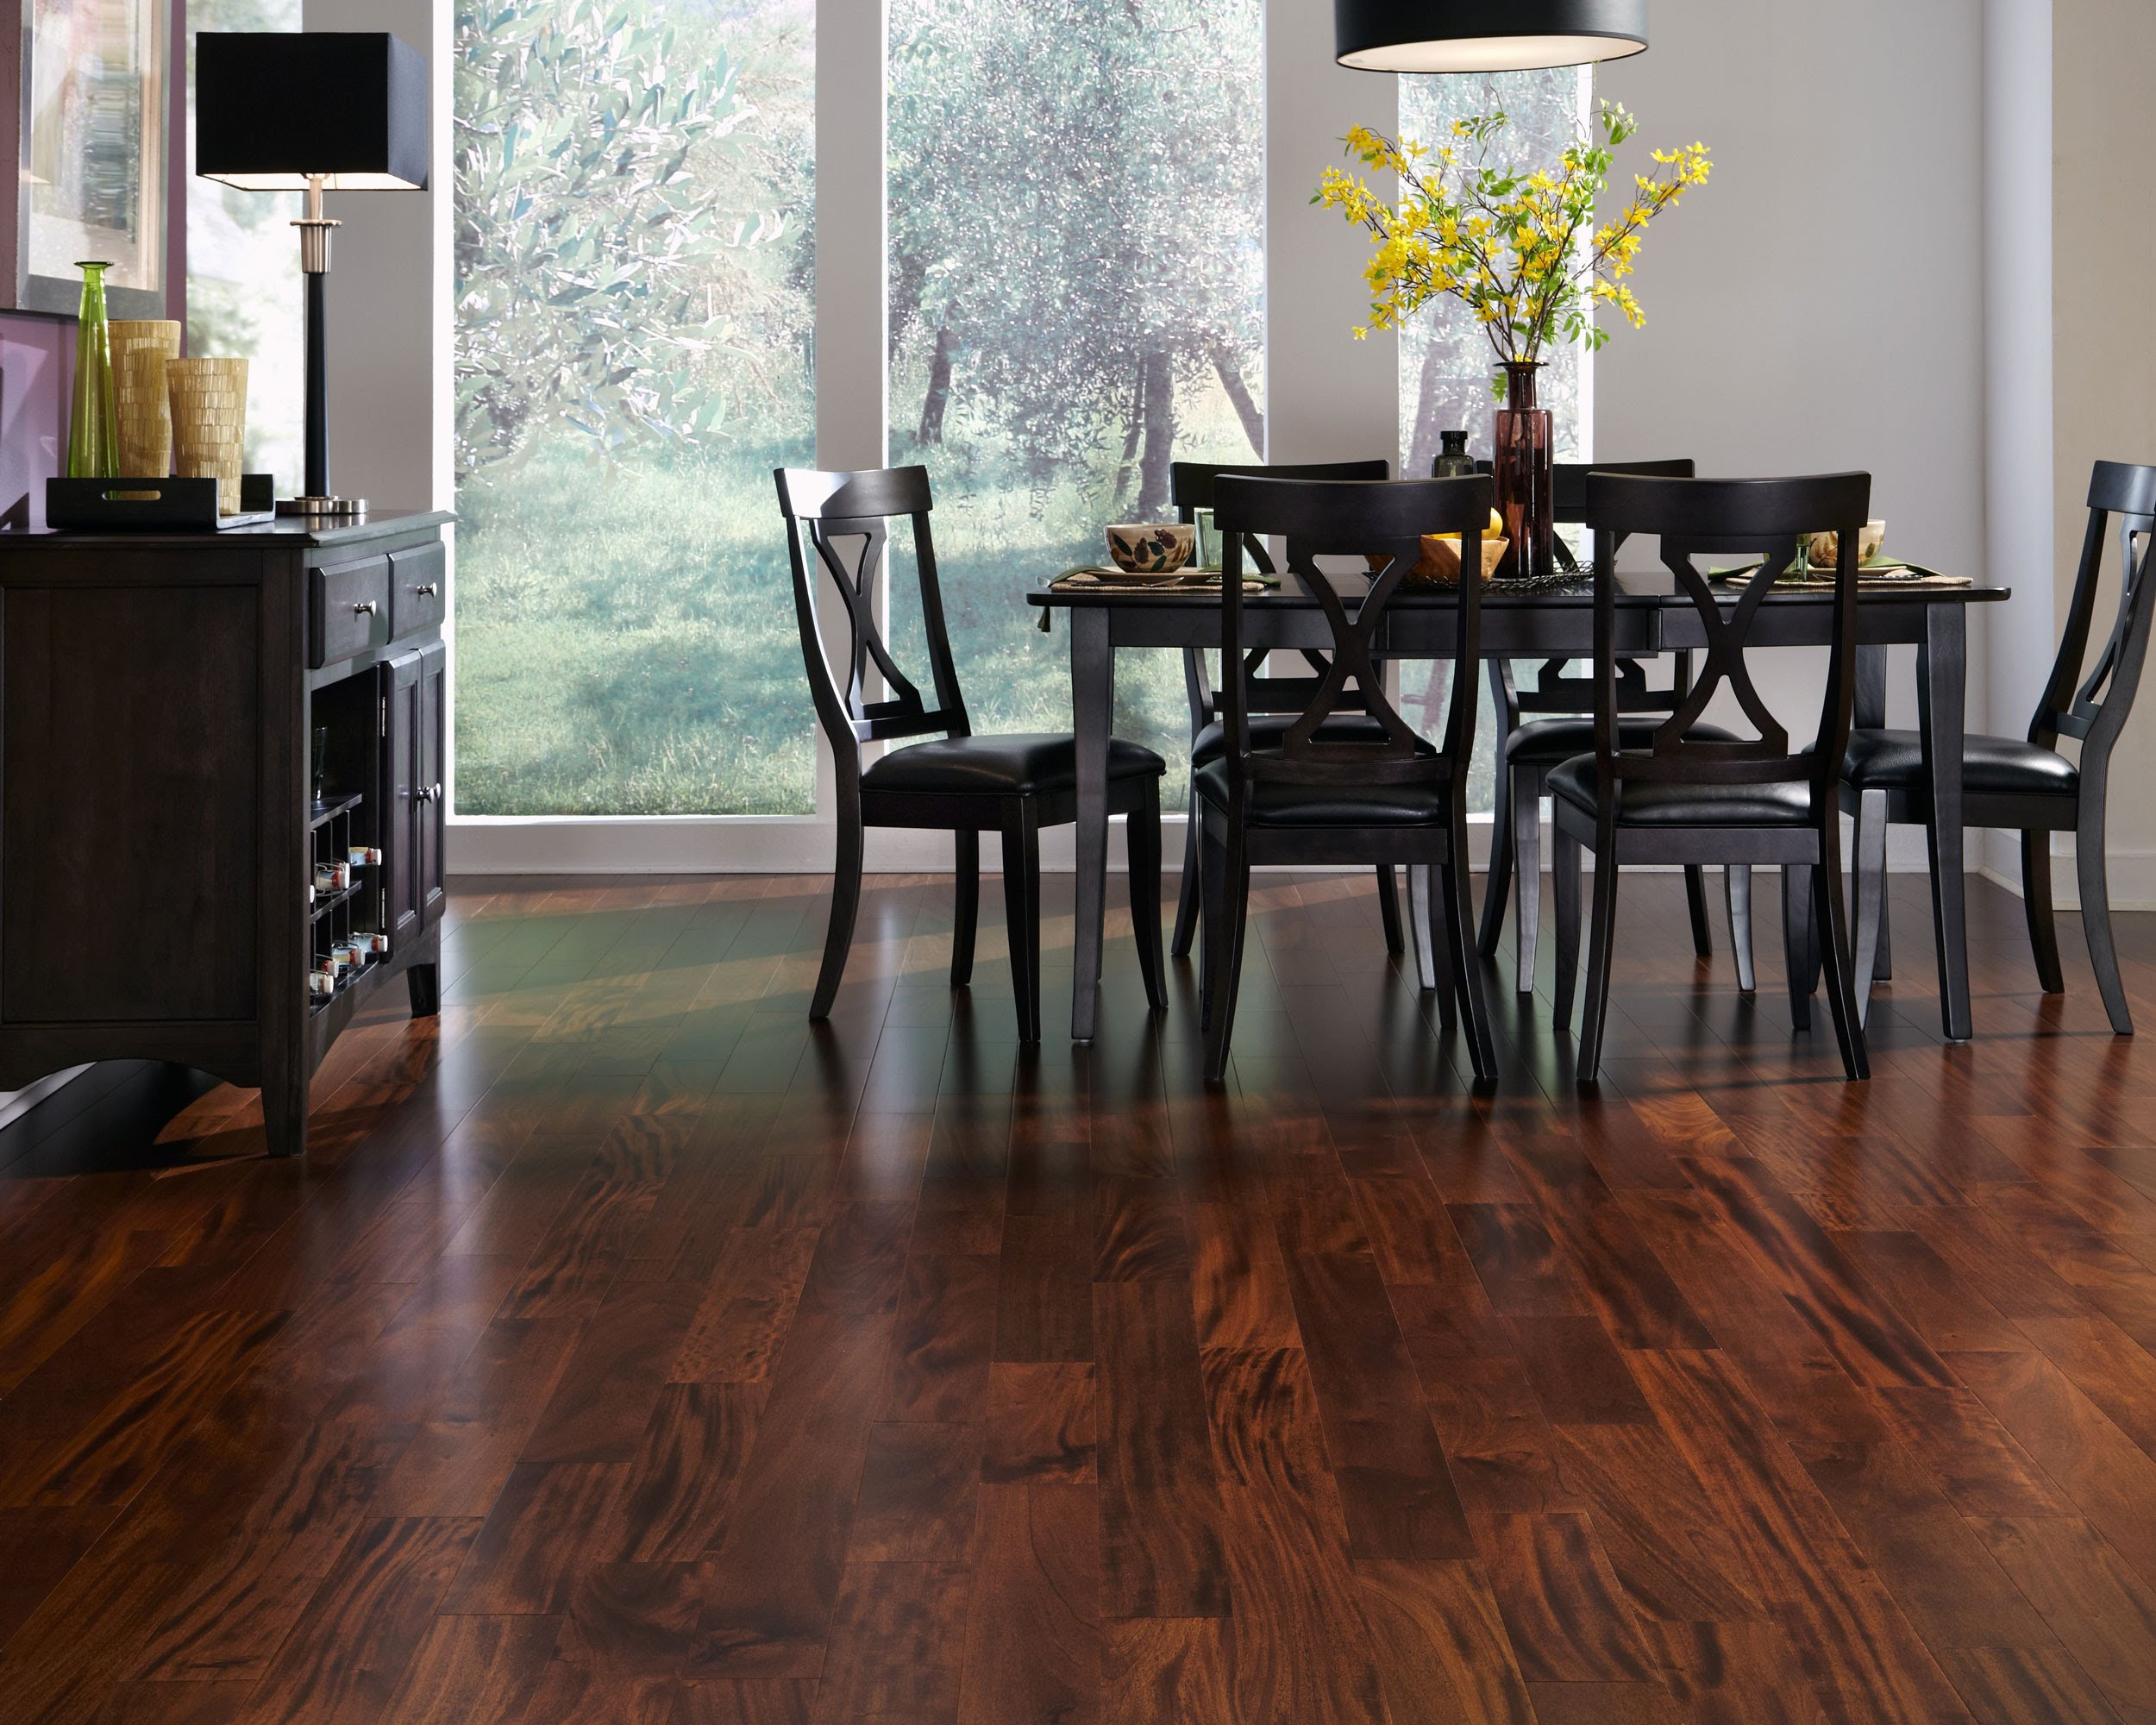 hardwood floor cleaning tulsa of breathtaking lumber liquidators hardwood flooring beautiful floors throughout breathtaking lumber liquidator hardwood flooring expert advice engineered installation floor for less cost video formaldehyde recall